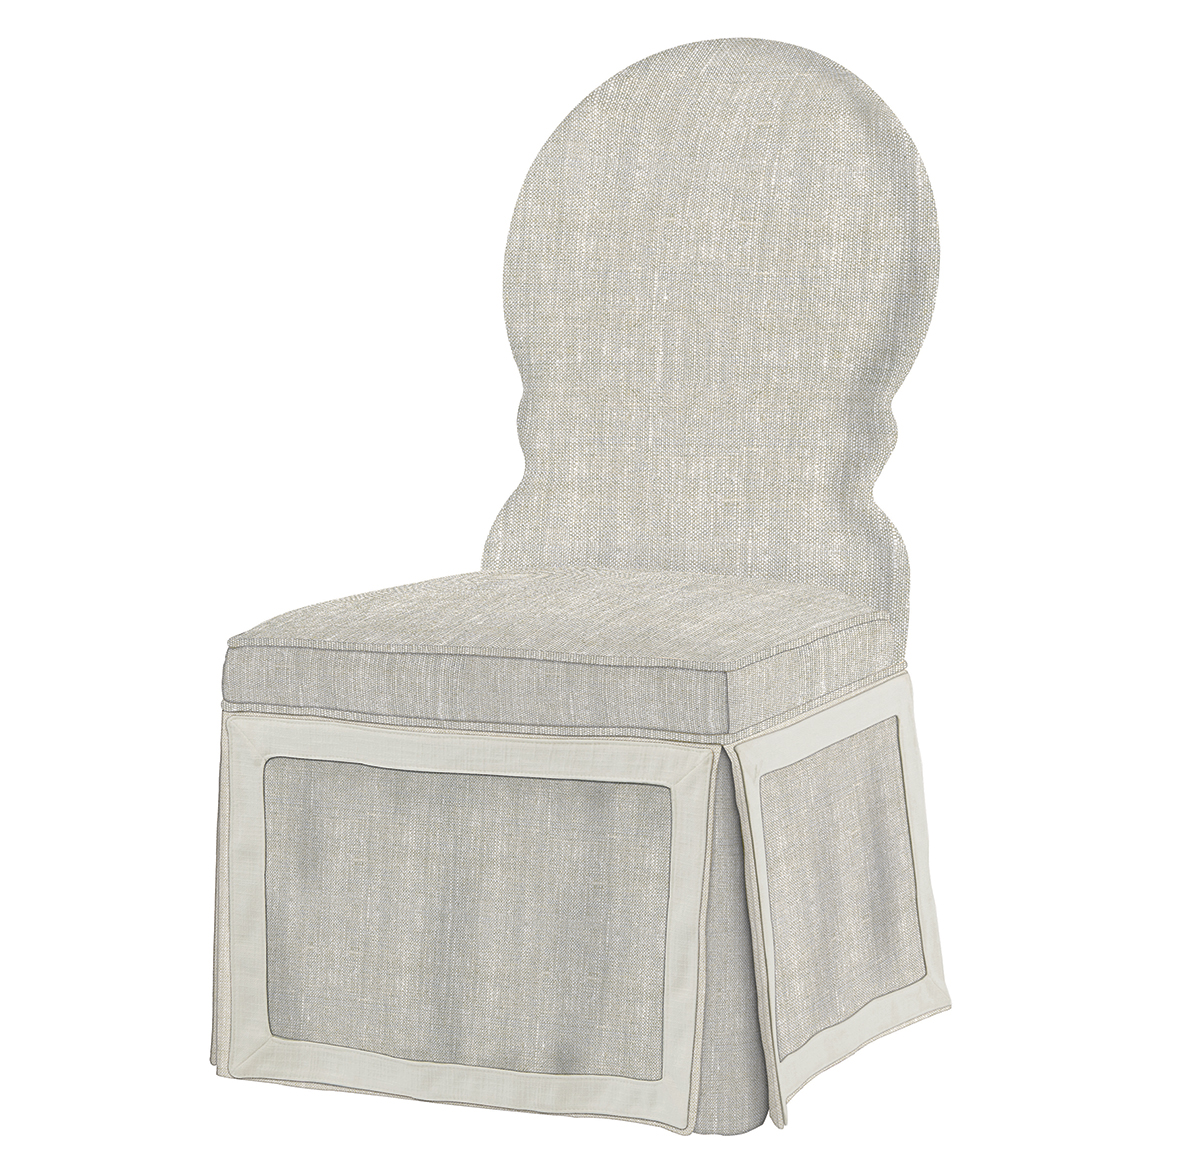 Sadie Venetian Fawn Cream Linen Dining Skirted Dining Chair